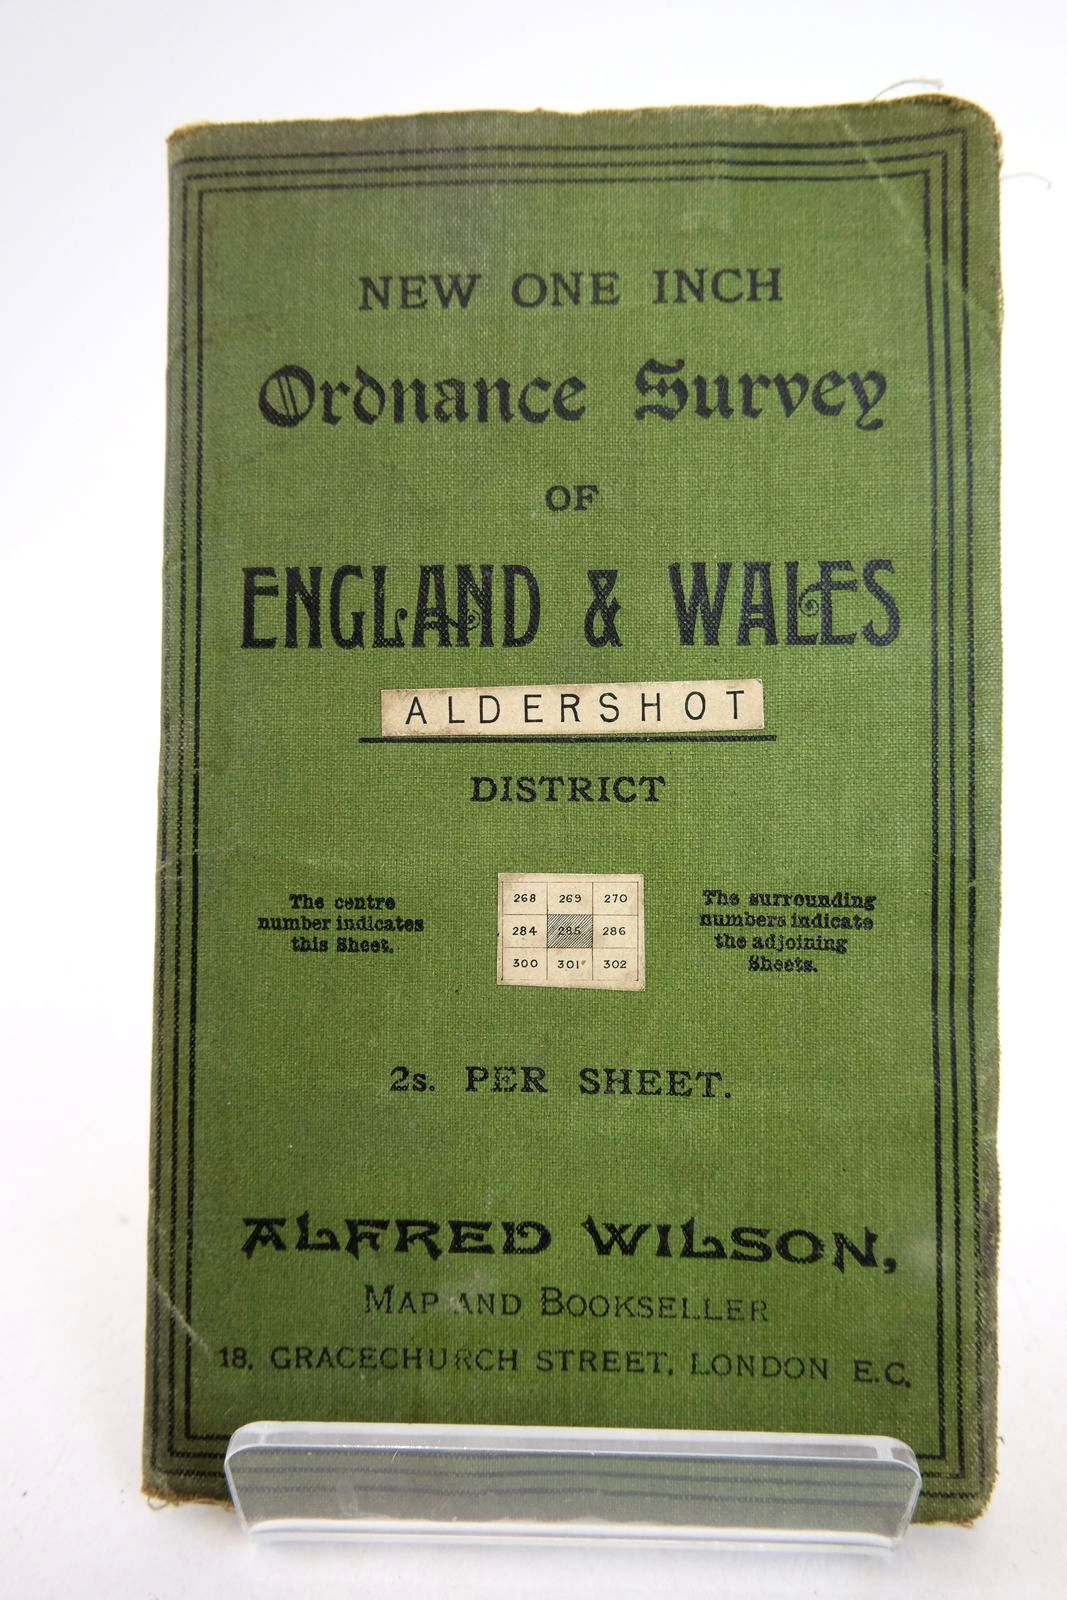 Photo of NEW ONE INCH ORDNANCE SURVEY OF ENGLAND & WALES ALDERSHOT DISTRICT published by Bartholomew (STOCK CODE: 2133280)  for sale by Stella & Rose's Books